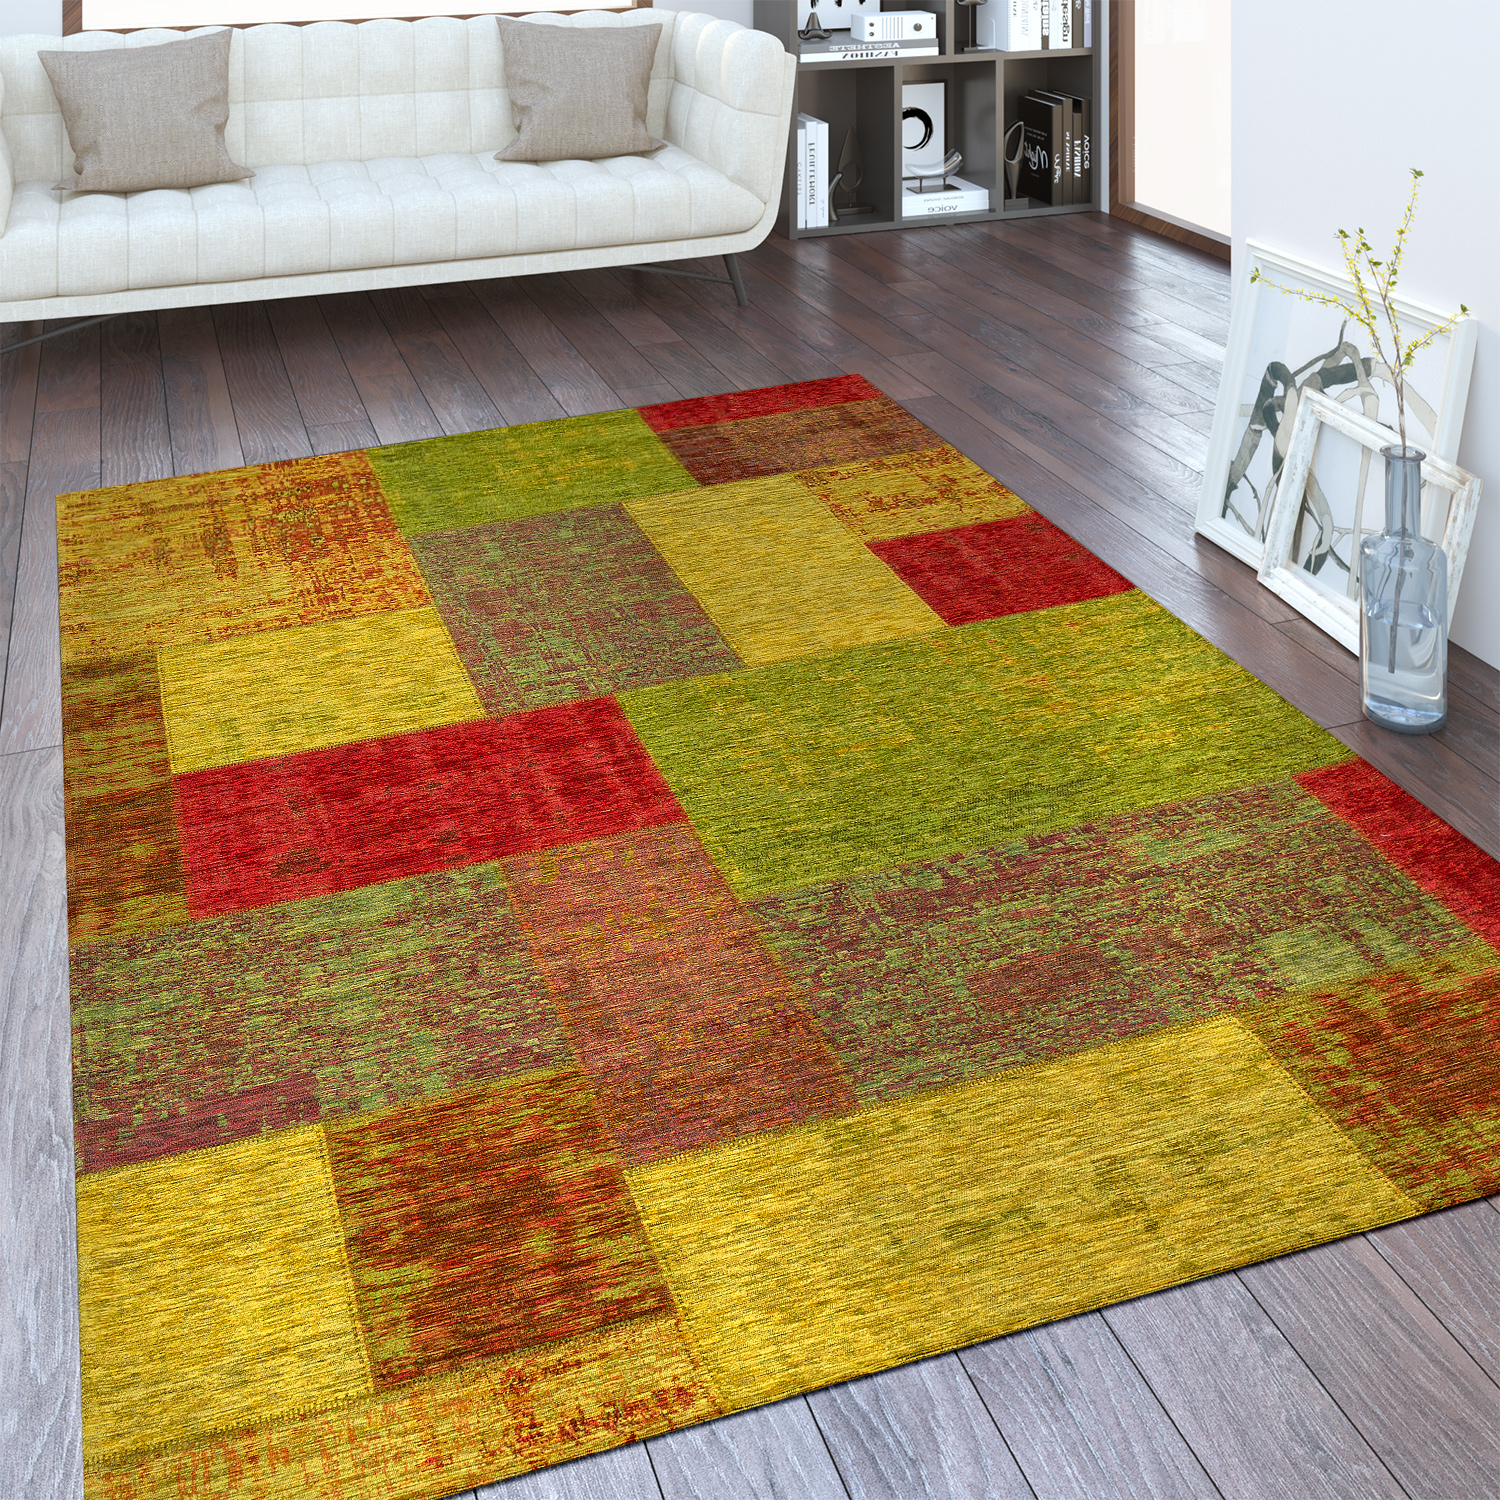 Vintage Flachgewebe Teppich Patchwork Multicolor